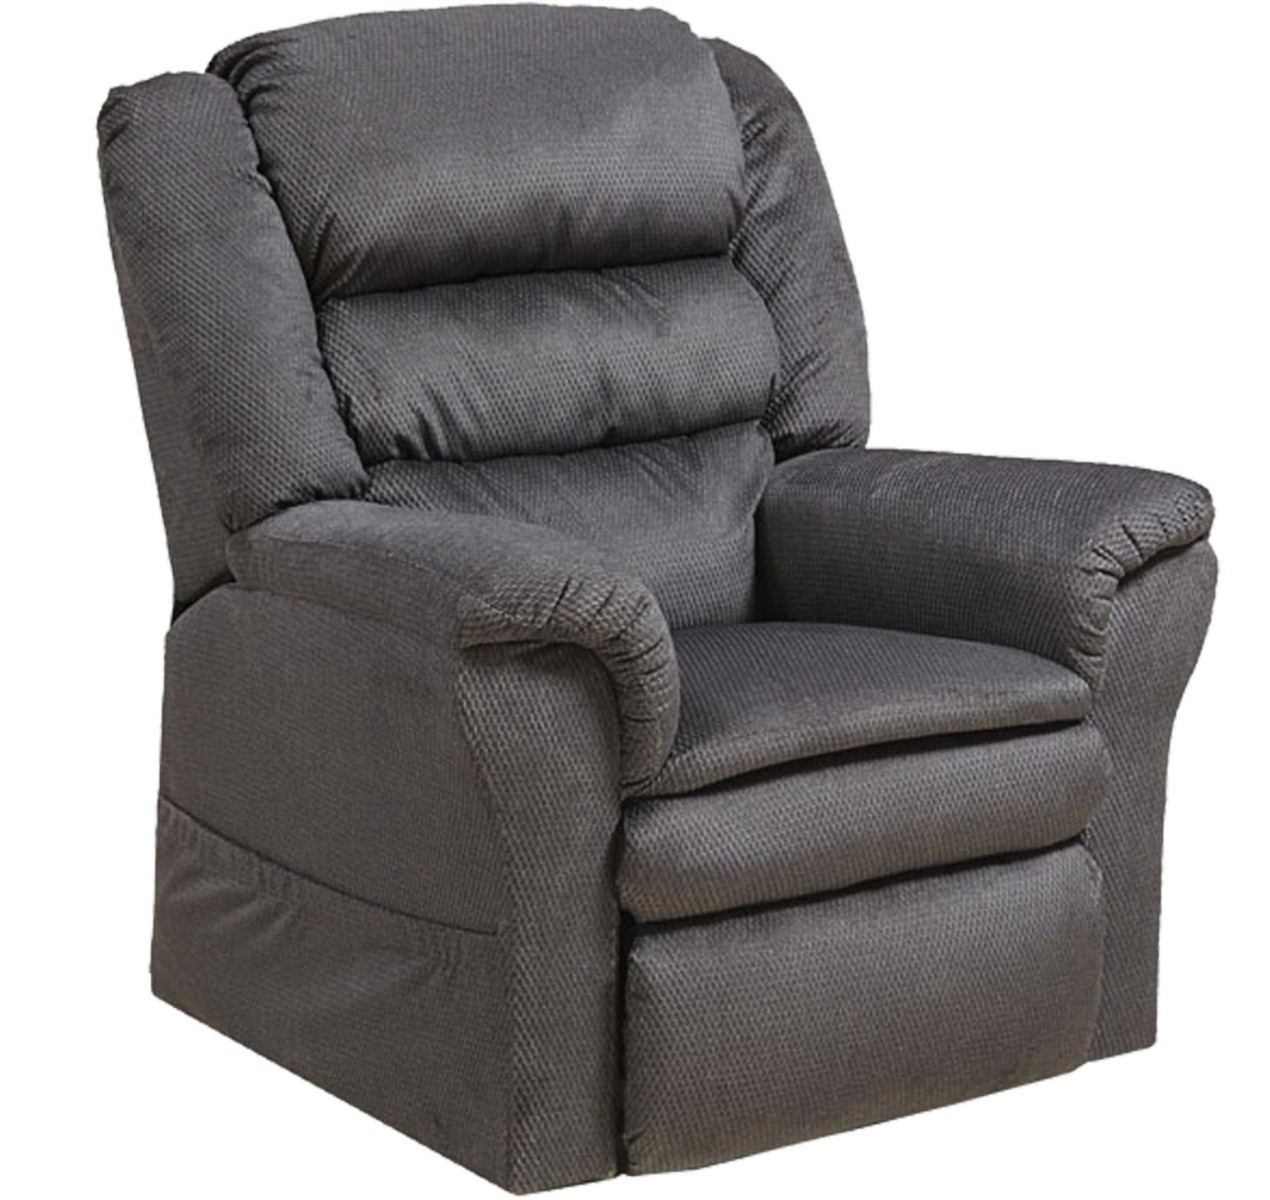 Catnapper Preston Power Lift Recliner With Pillowtop Seat Smoke Cn 4850 Smoke At Homelement Com